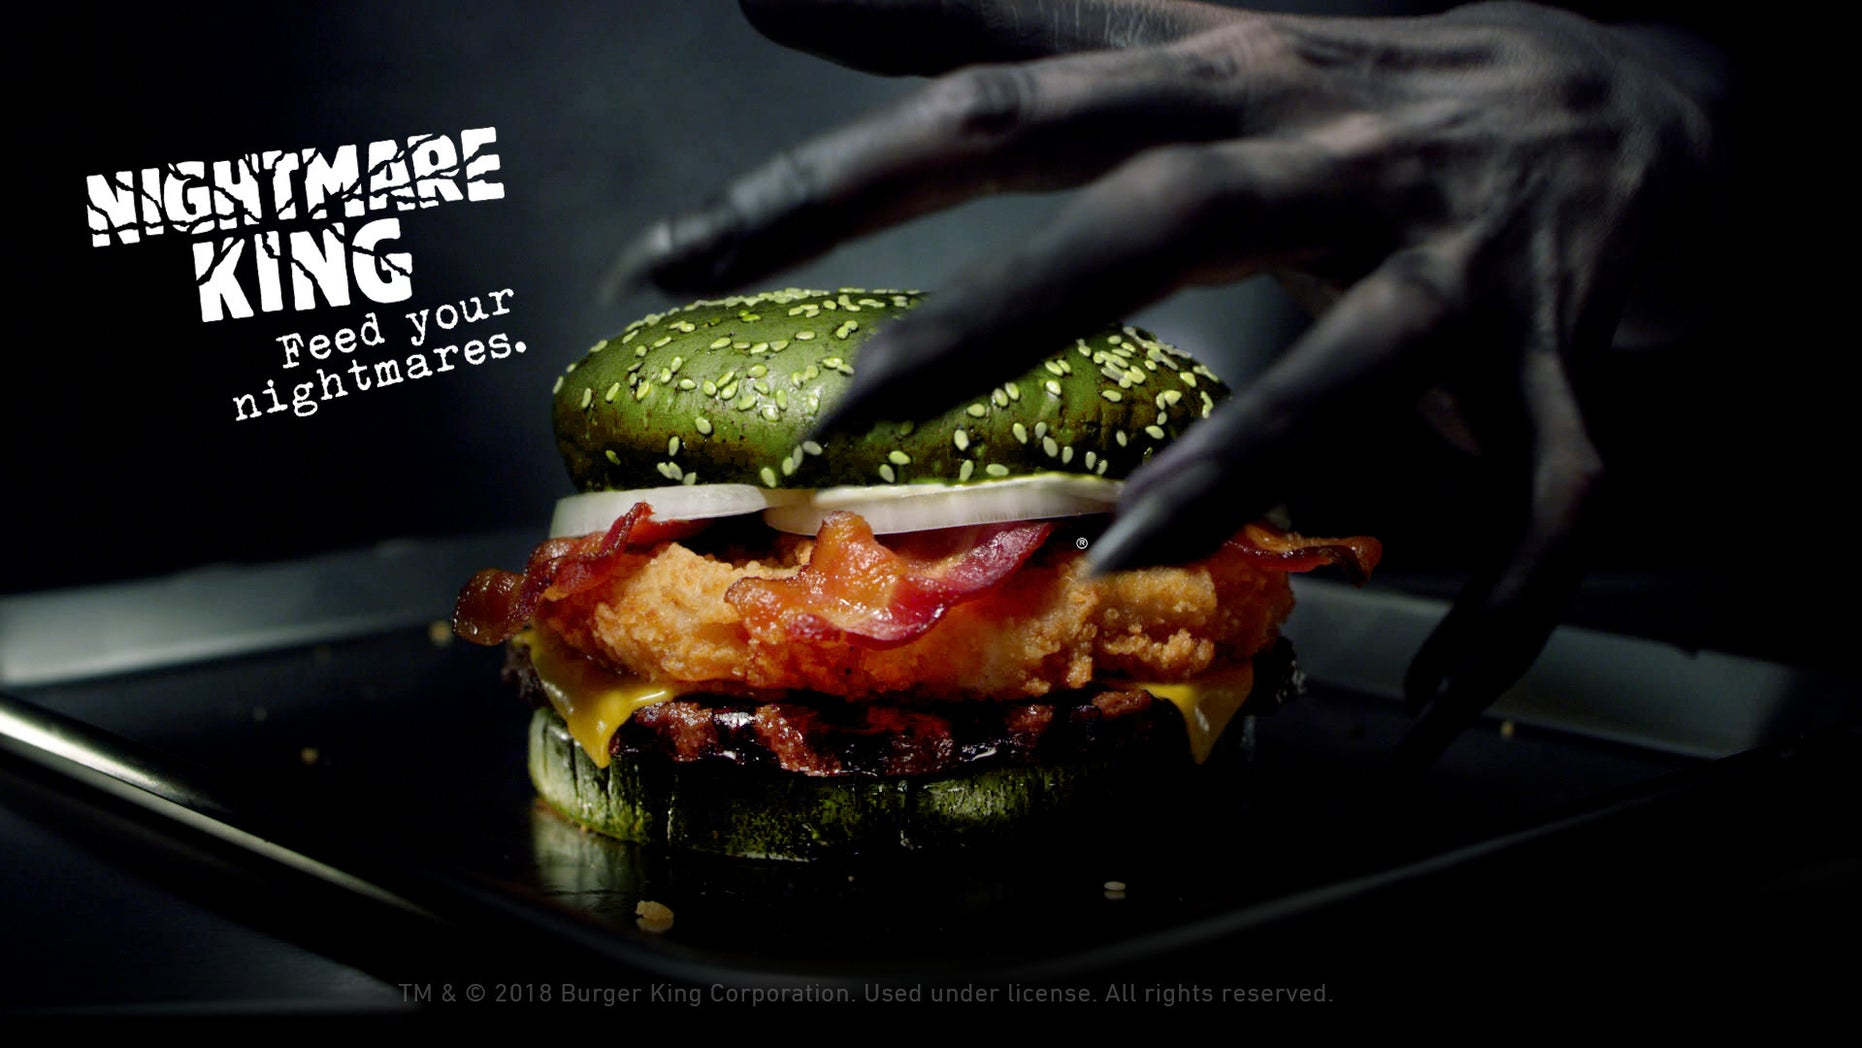 Burger King creates 'Nightmare King' for Halloween